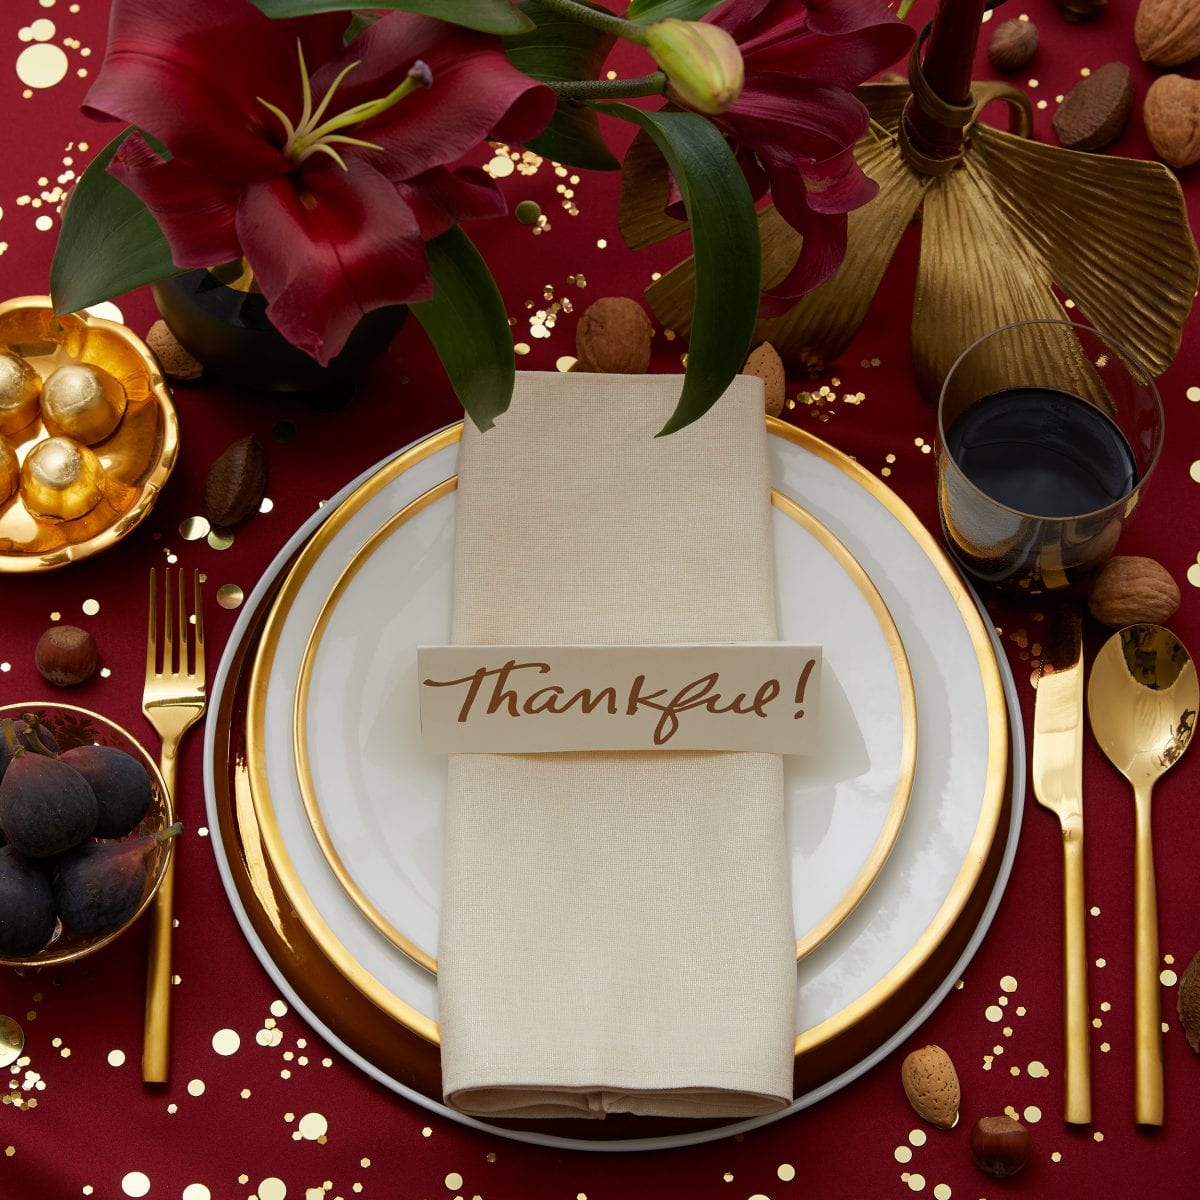 thanksgiving, Place setting, table setting, thankful, place card, easy, Printable, Template